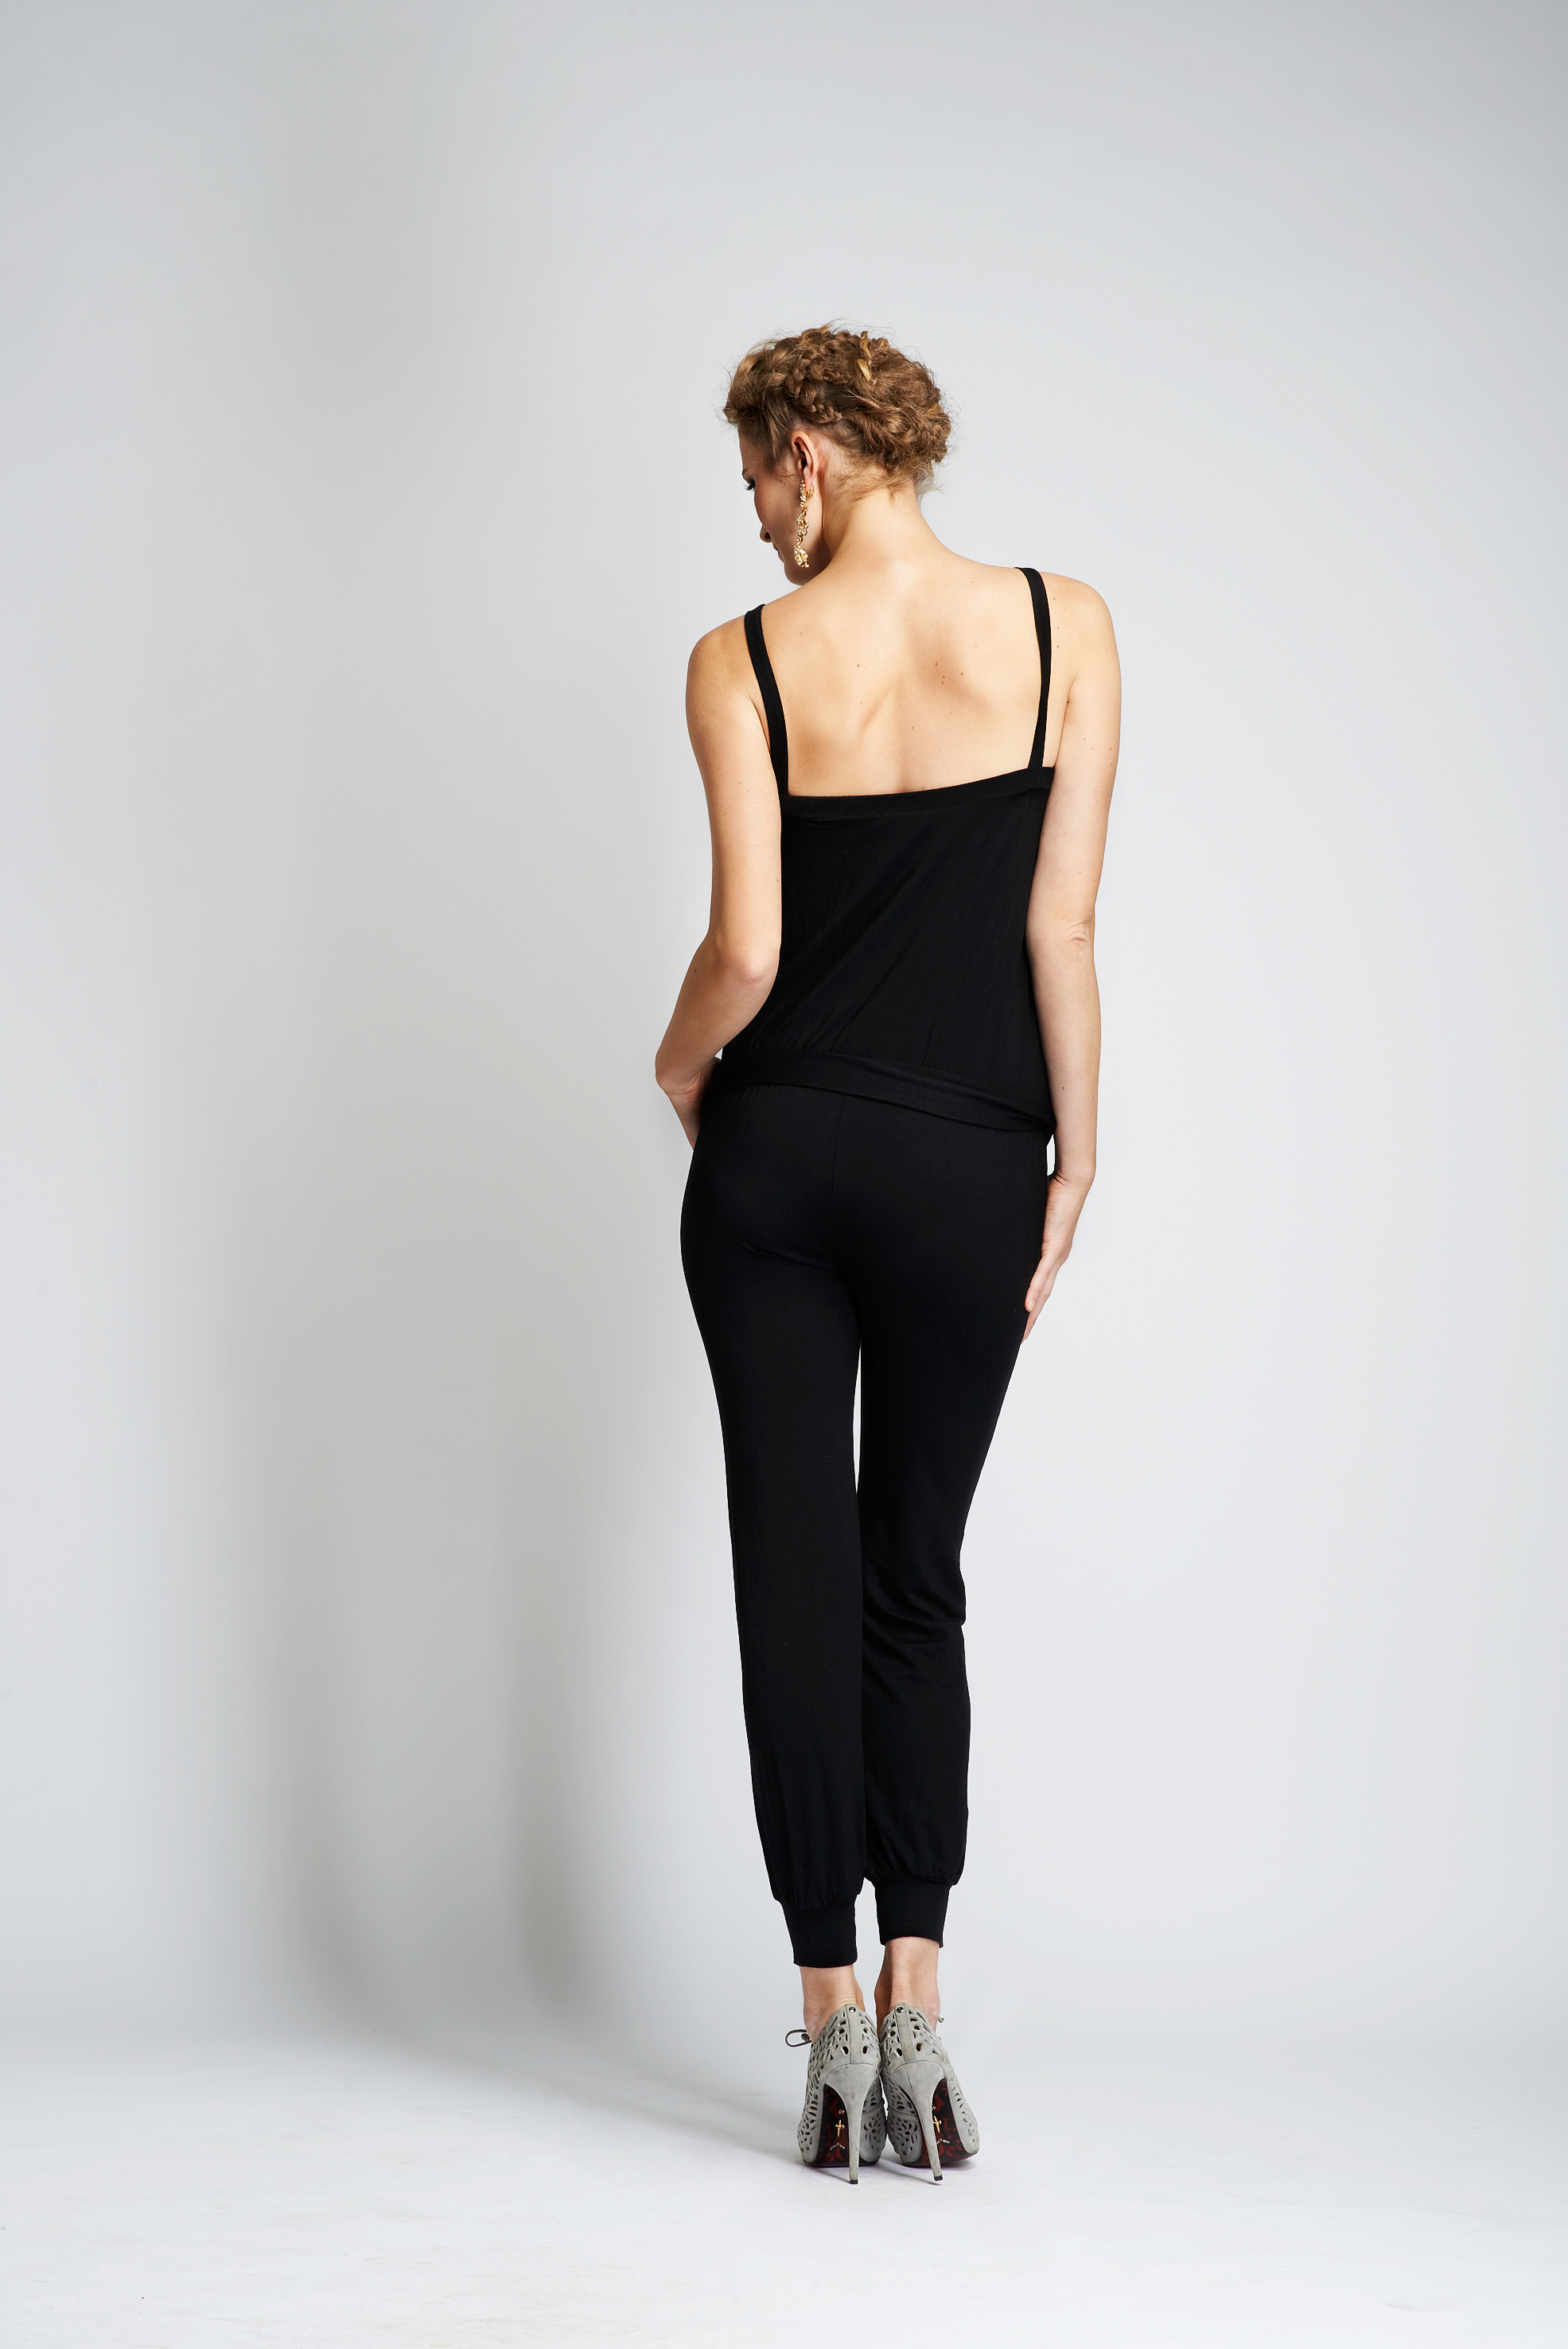 Find great deals on eBay for maternity jumpsuit. Shop with confidence.